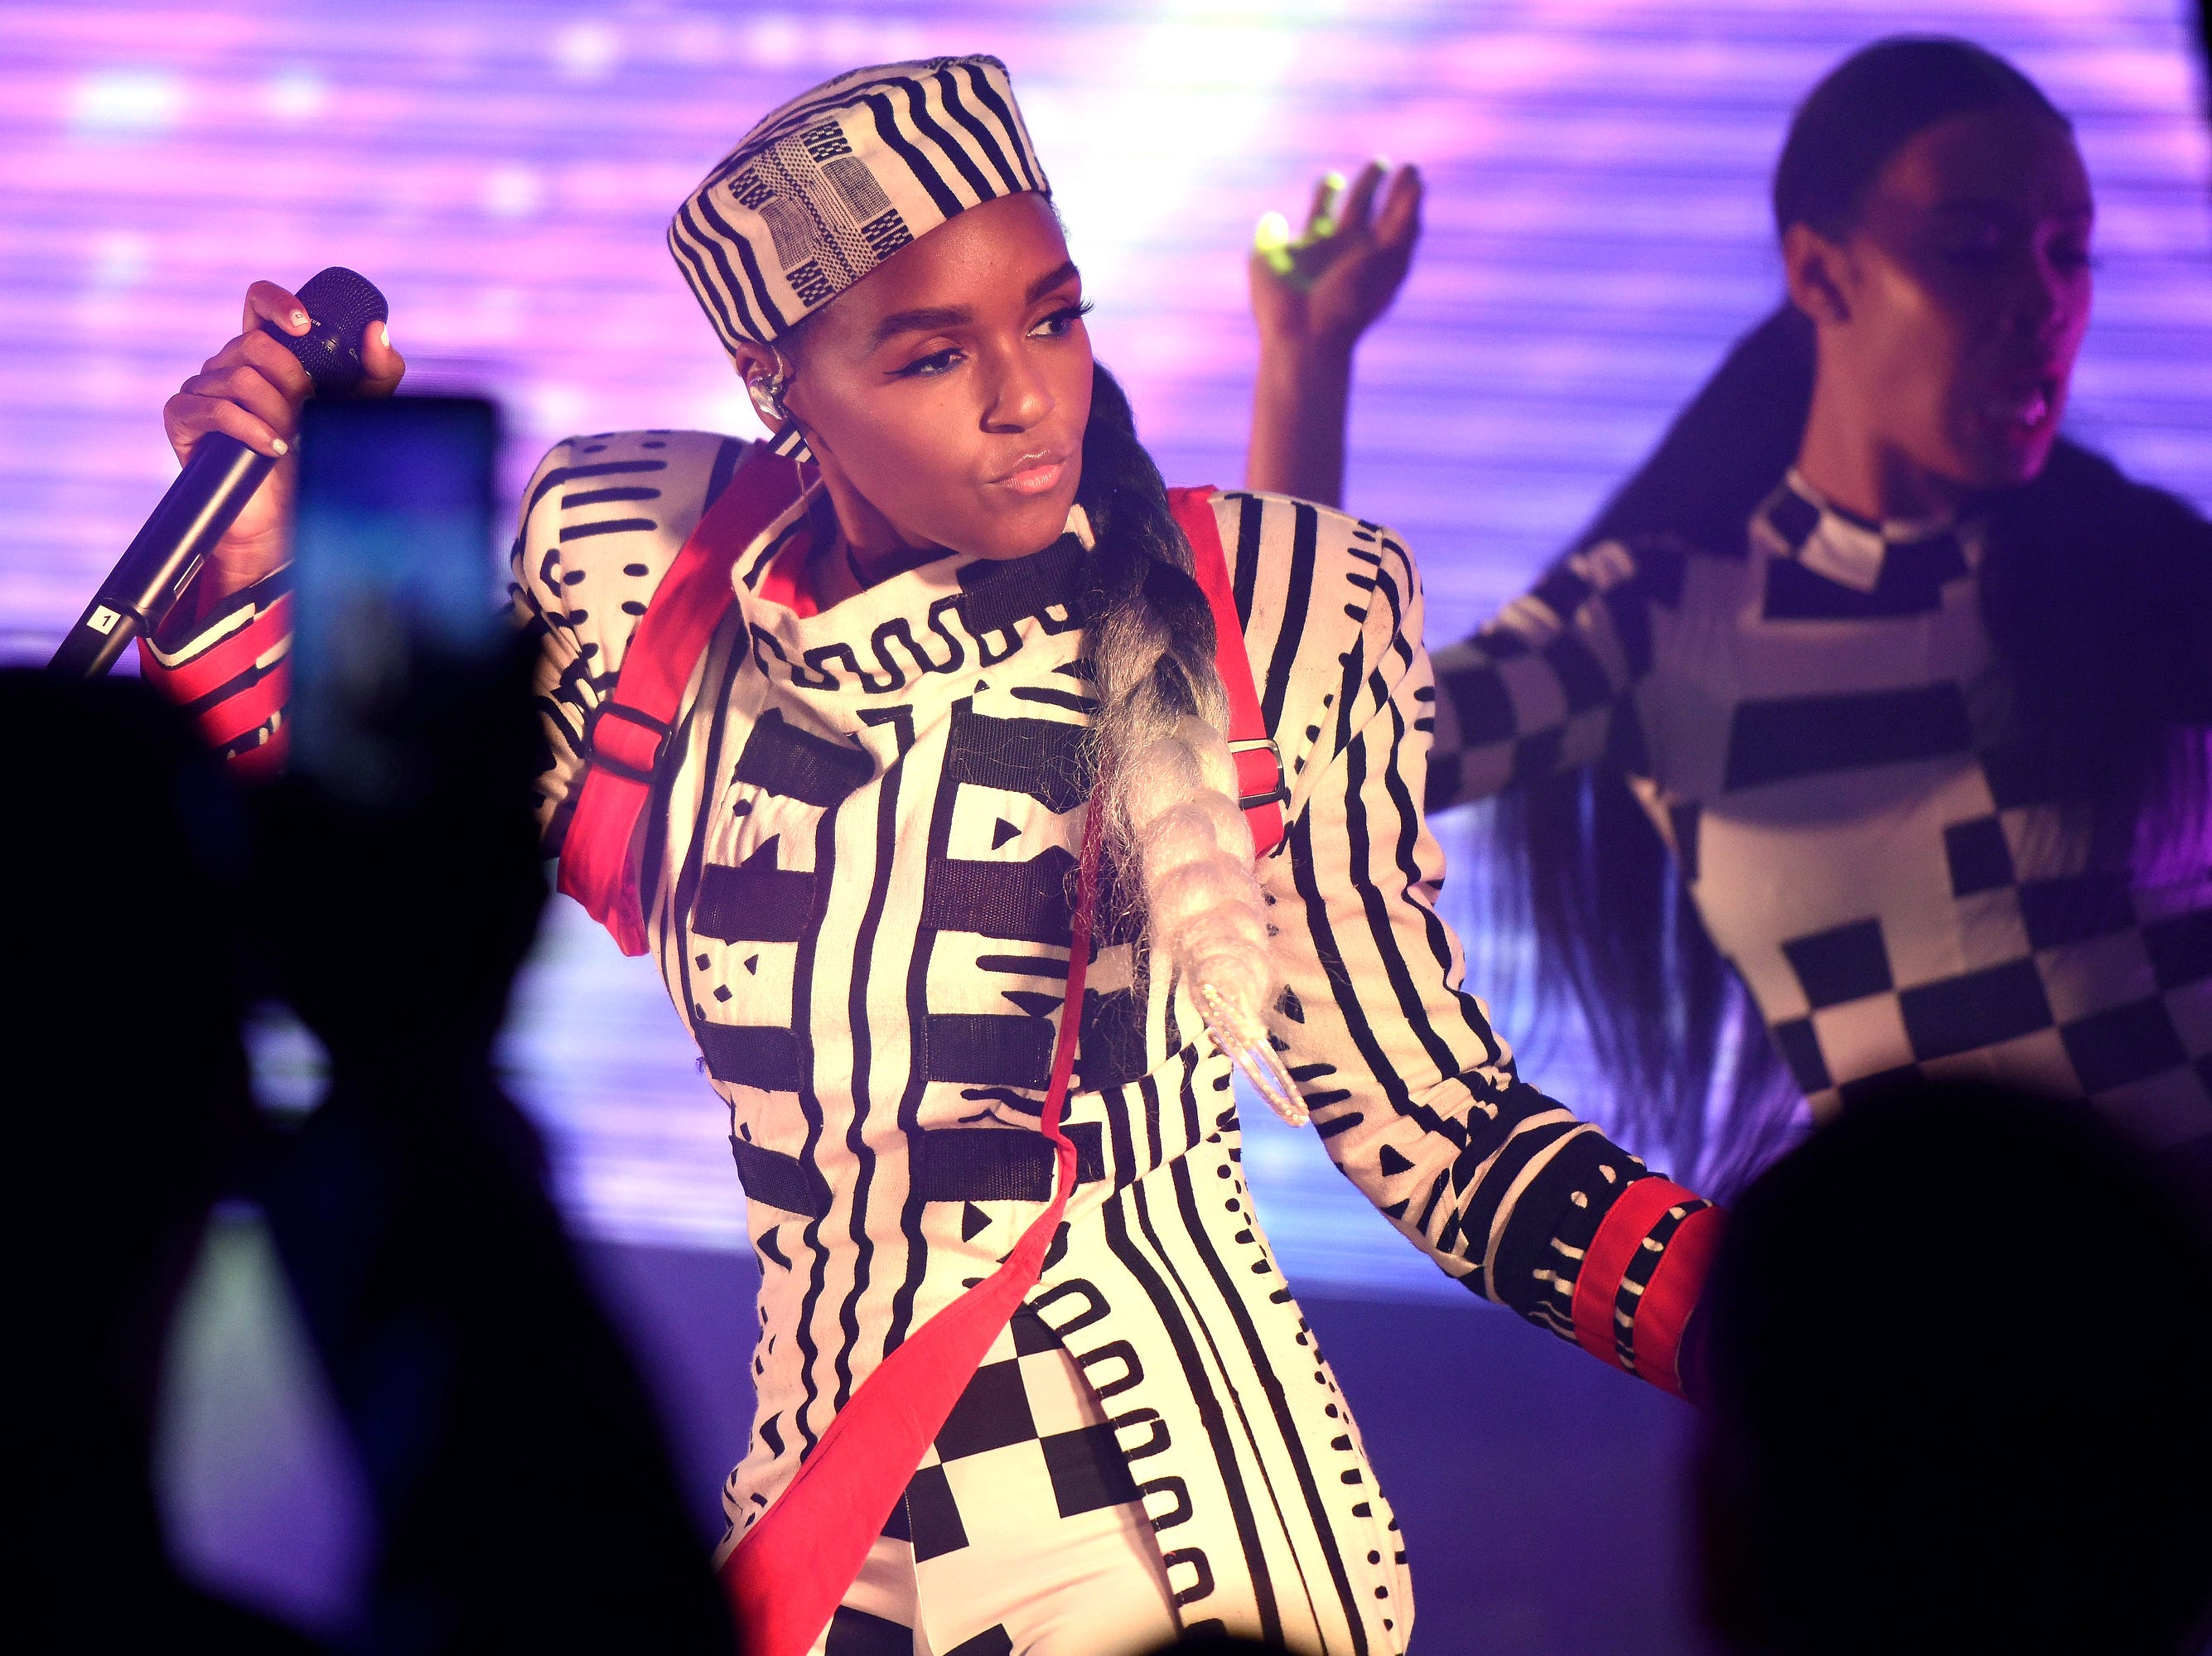 CHARLOTTE, NC - FEBRUARY 17: Janelle Monae performs at the AT&T Pre Game Concert leading in to NBA All-Star on Sunday, February 17, 2019 at EpiCentre Theater in Charlotte, North Carolina. (Photo by Lance King/Getty Images for AT&T) ORG XMIT: 775299401 ORIG FILE ID: 1130408170